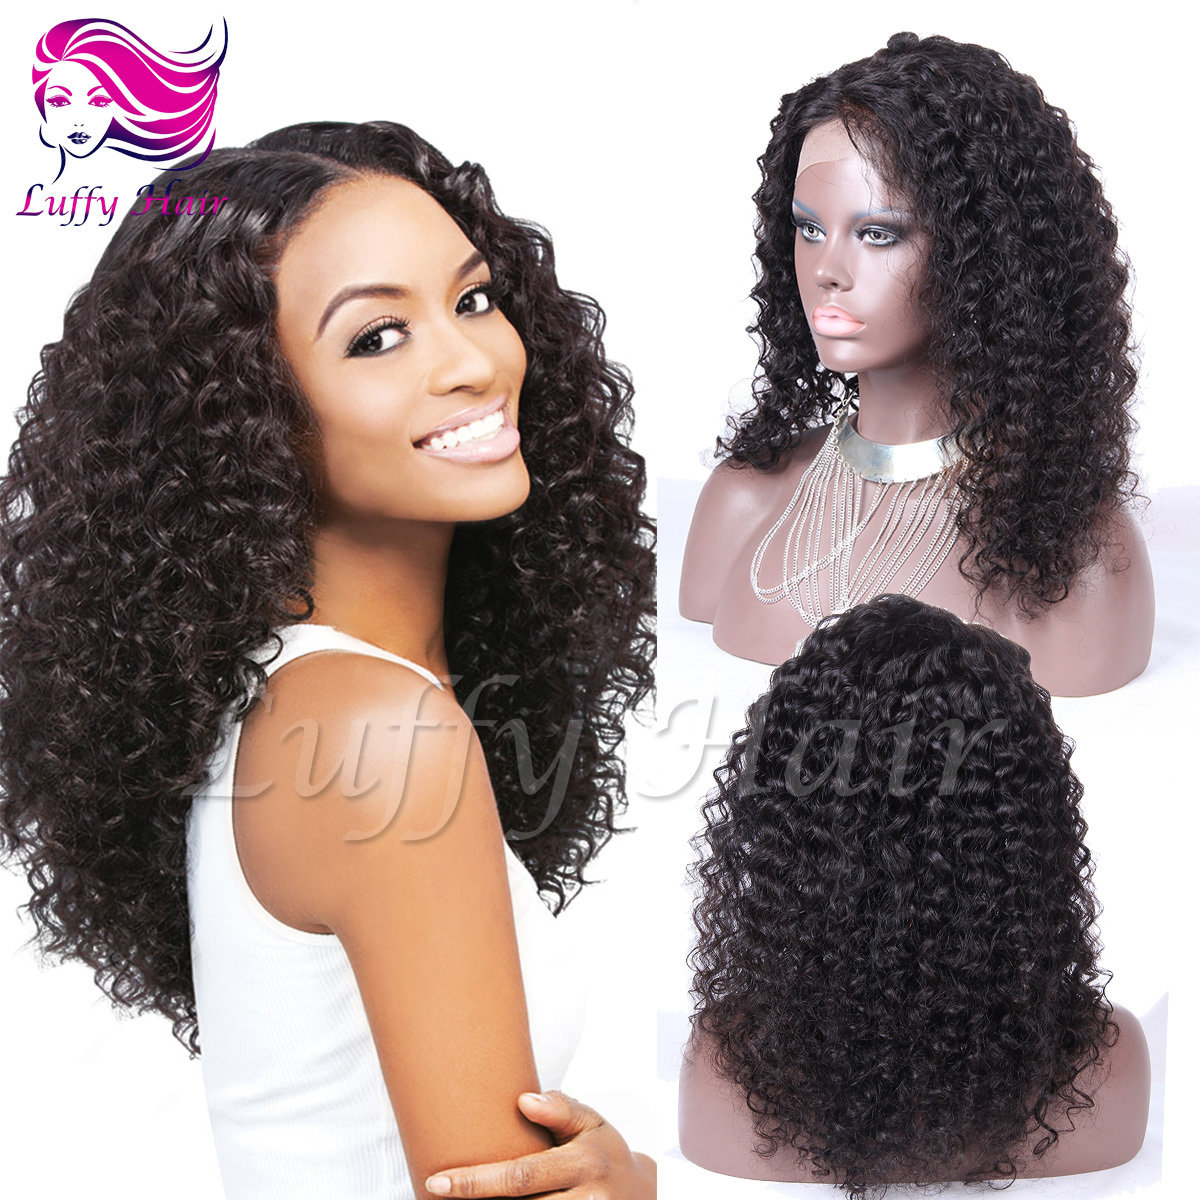 8A Virgin Human Hair Kinky Curly Wig - KWL071